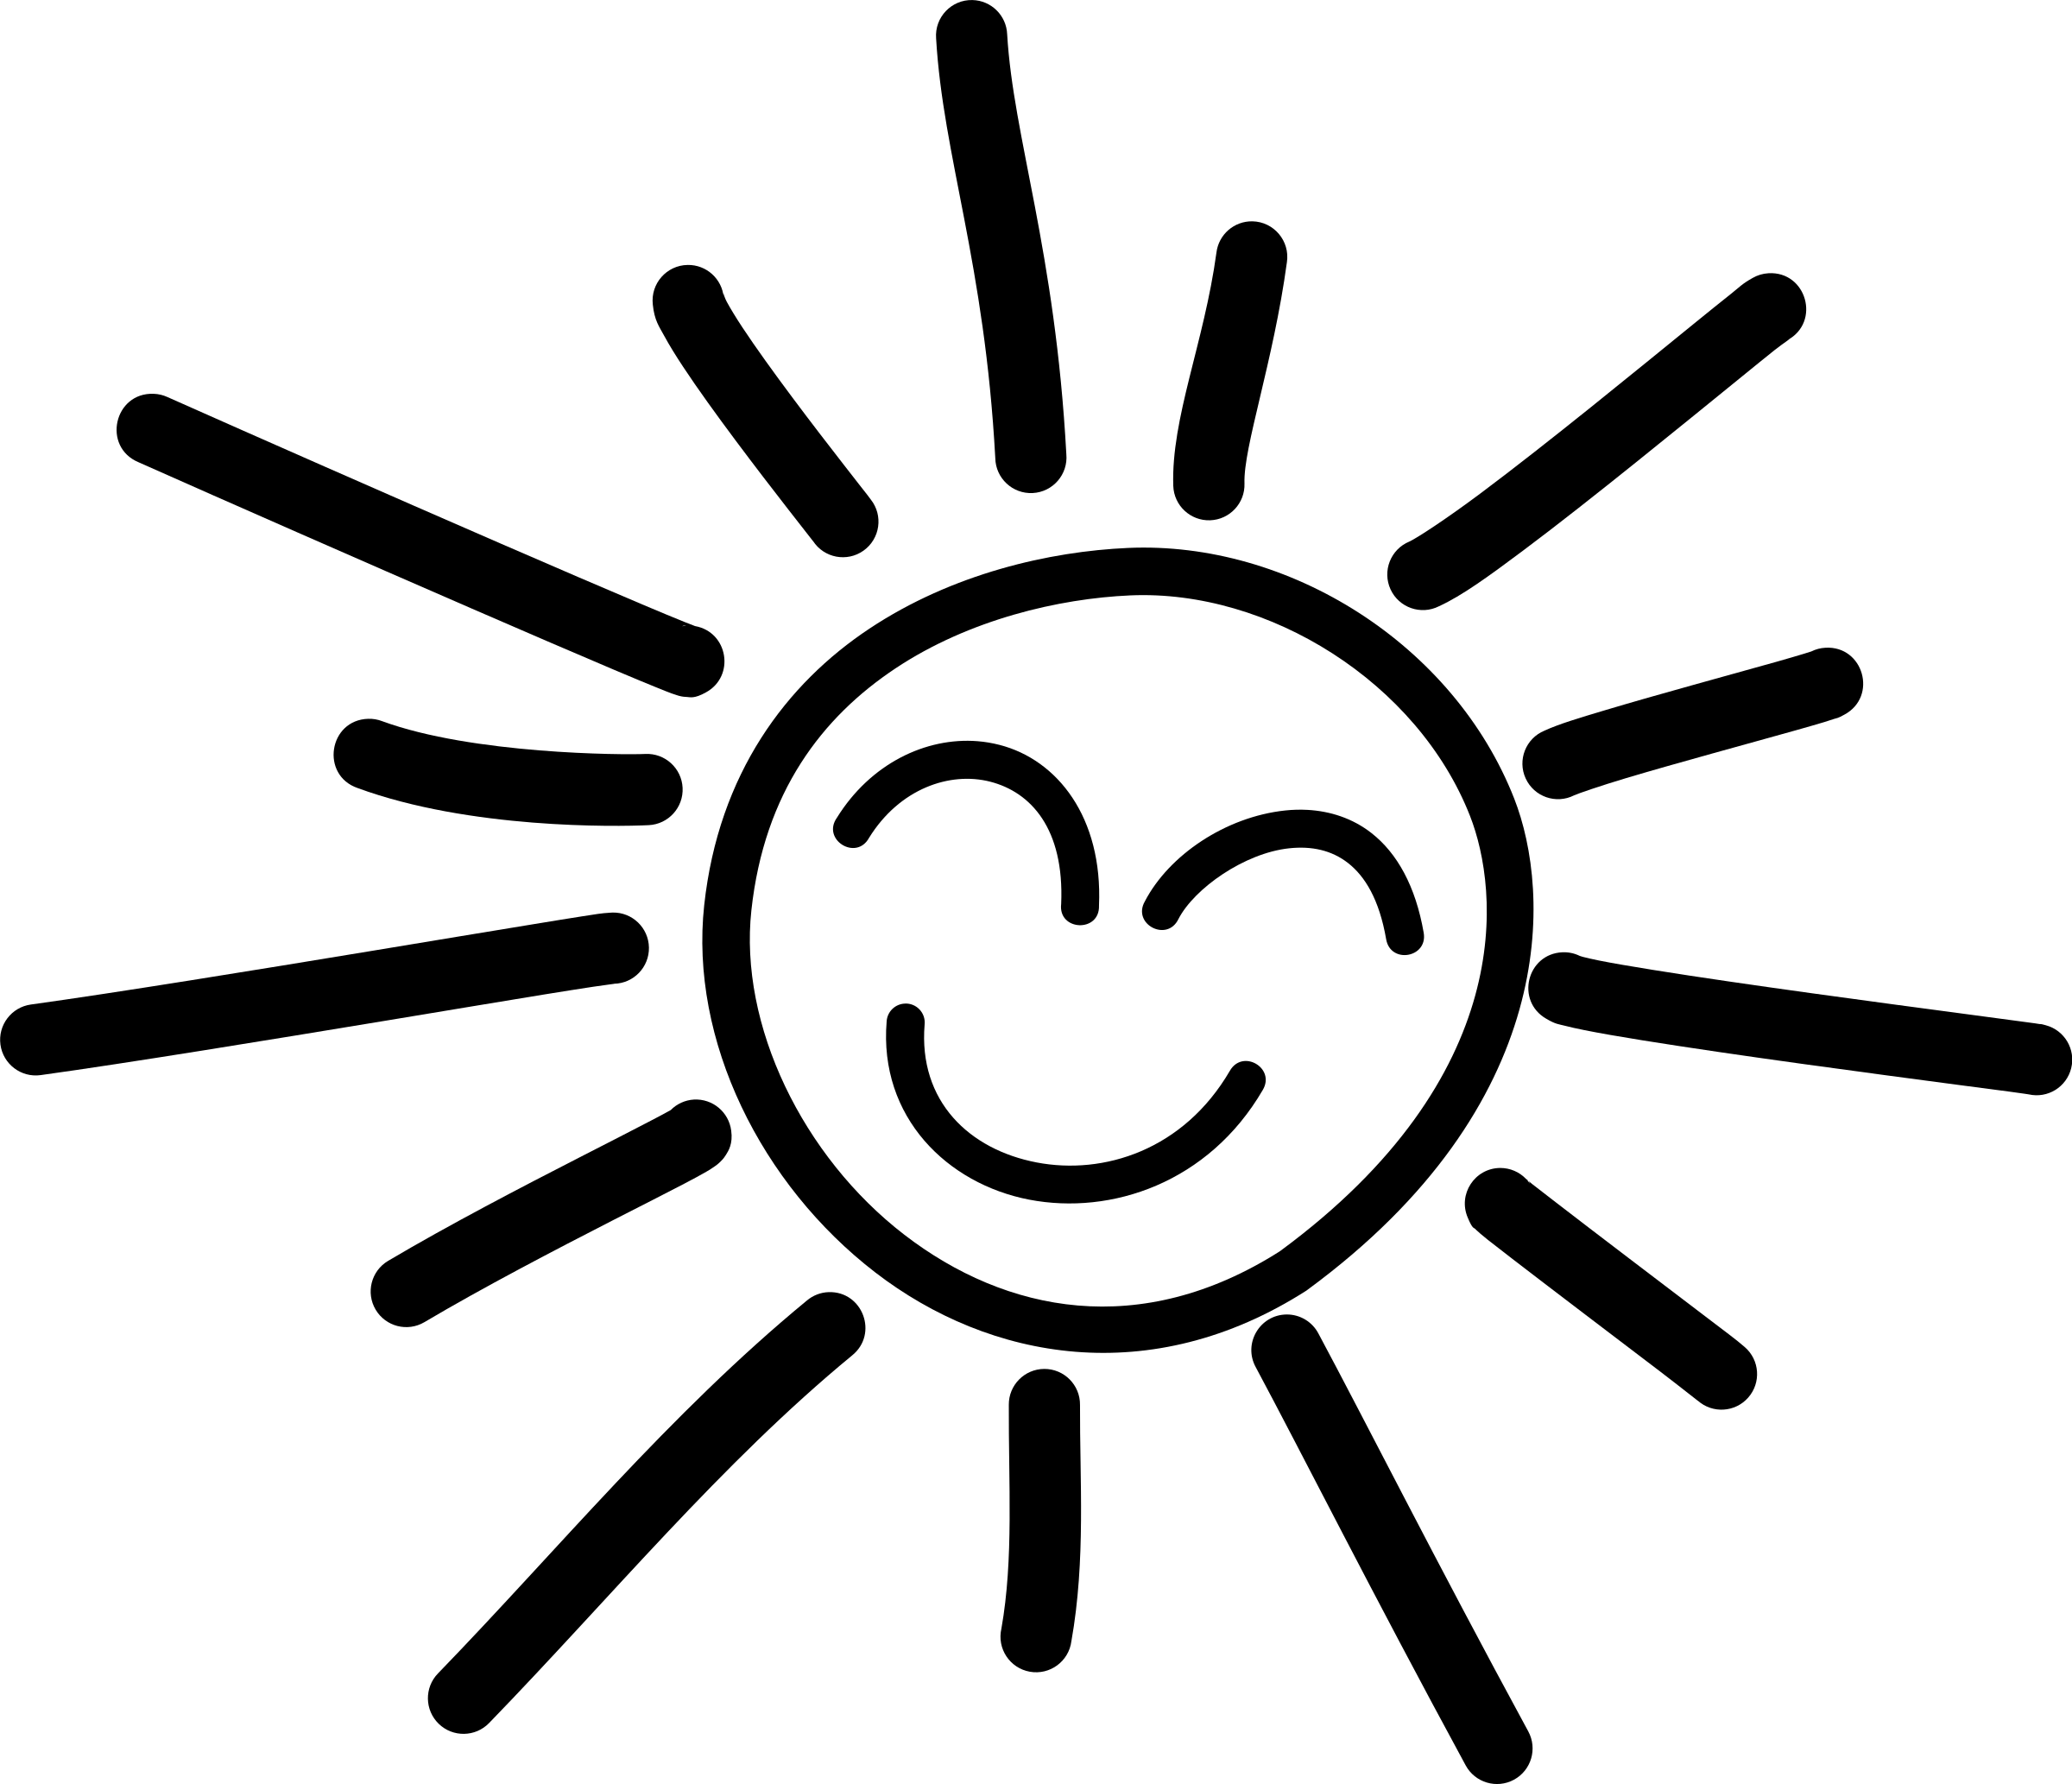 Happy Sun PNG No Background - 144364